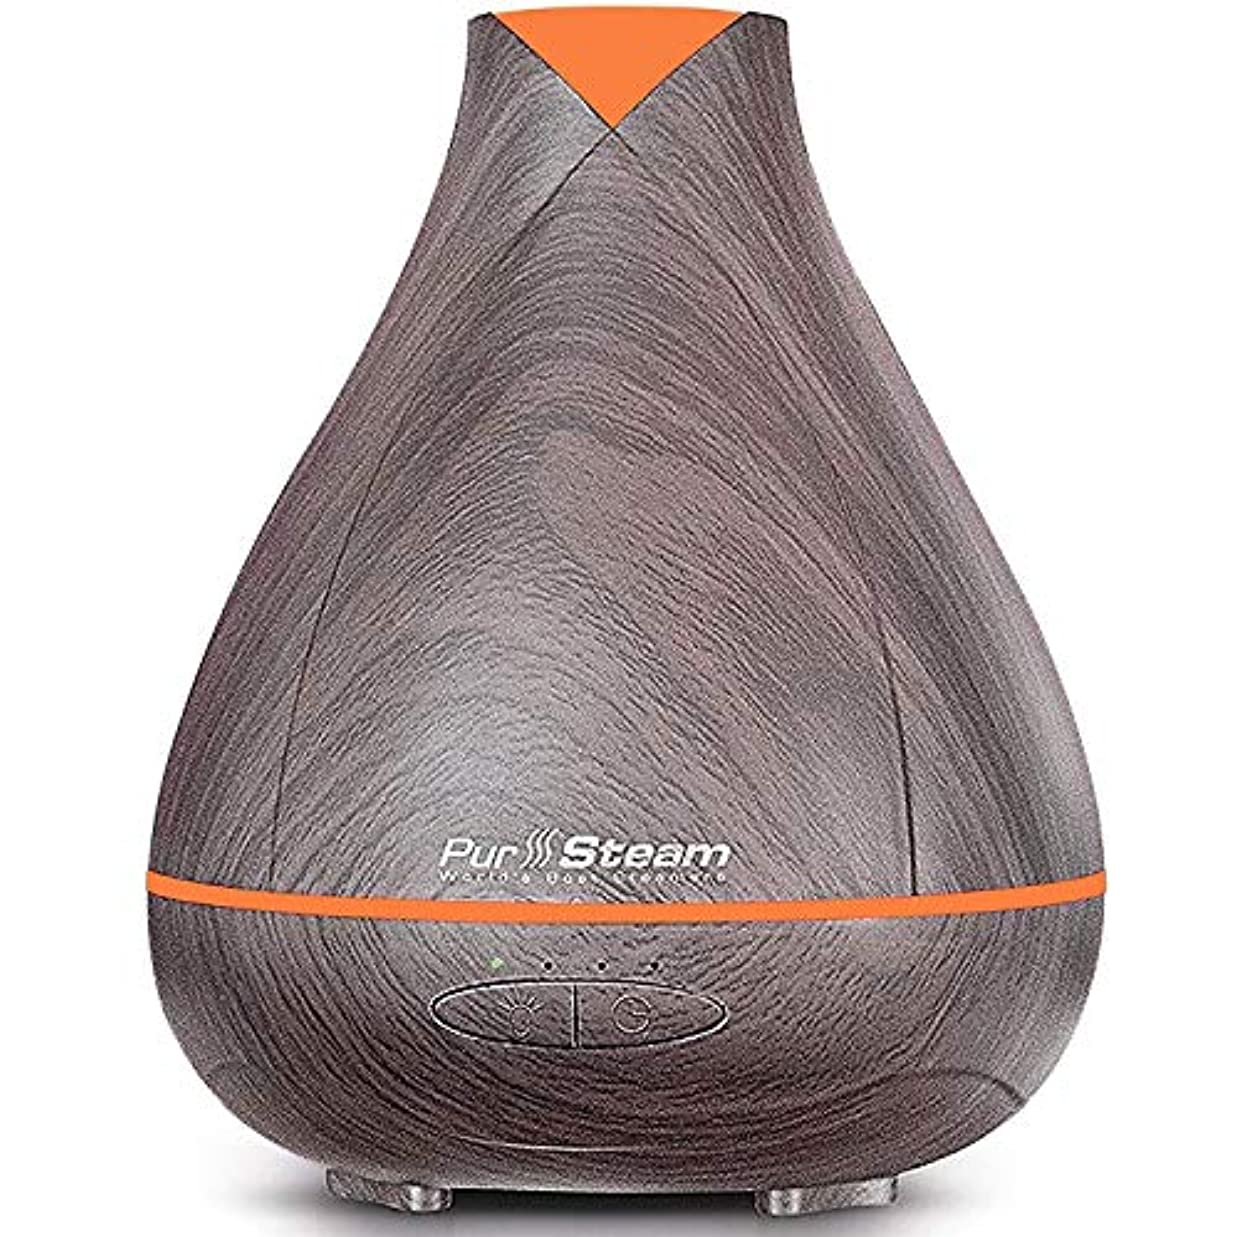 わかる遊び場ハッチPurSteam Essential Oil Diffuser, Wood Grain Aromatherapy Diffuser Ultrasonic Cool Mist Humidifier with Color LED...